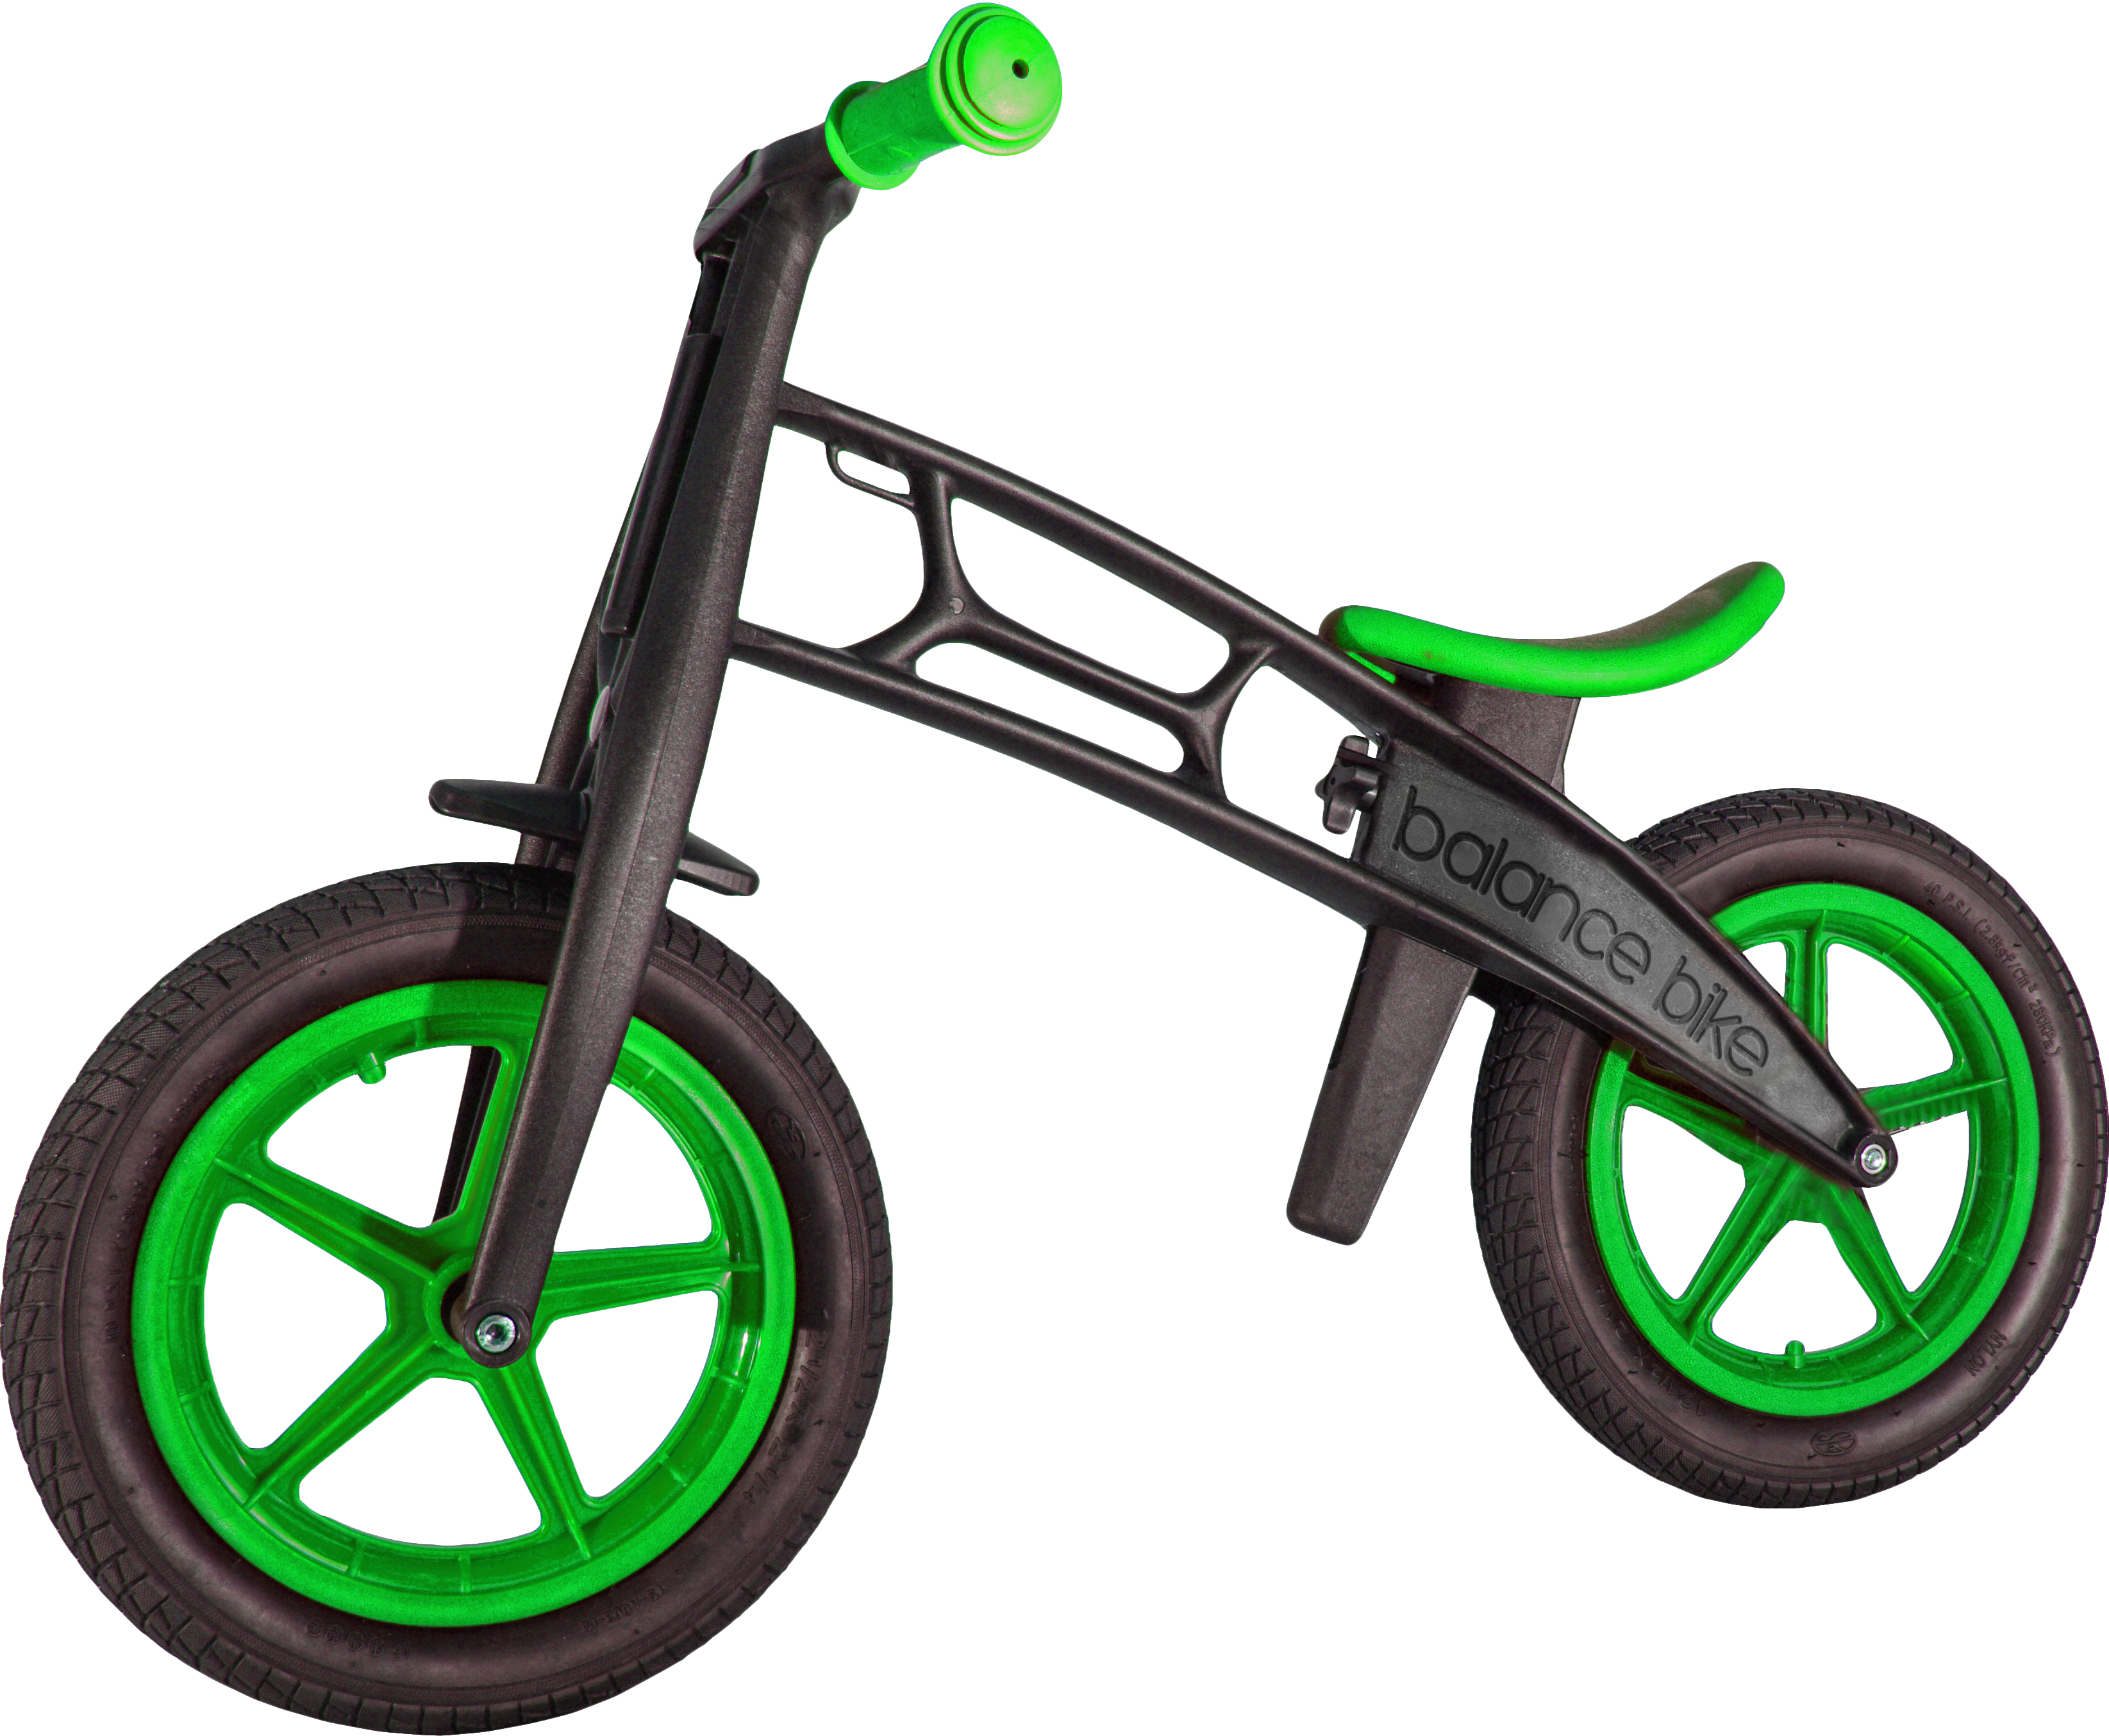 Clipart bicycle green bike. Balance zompers available